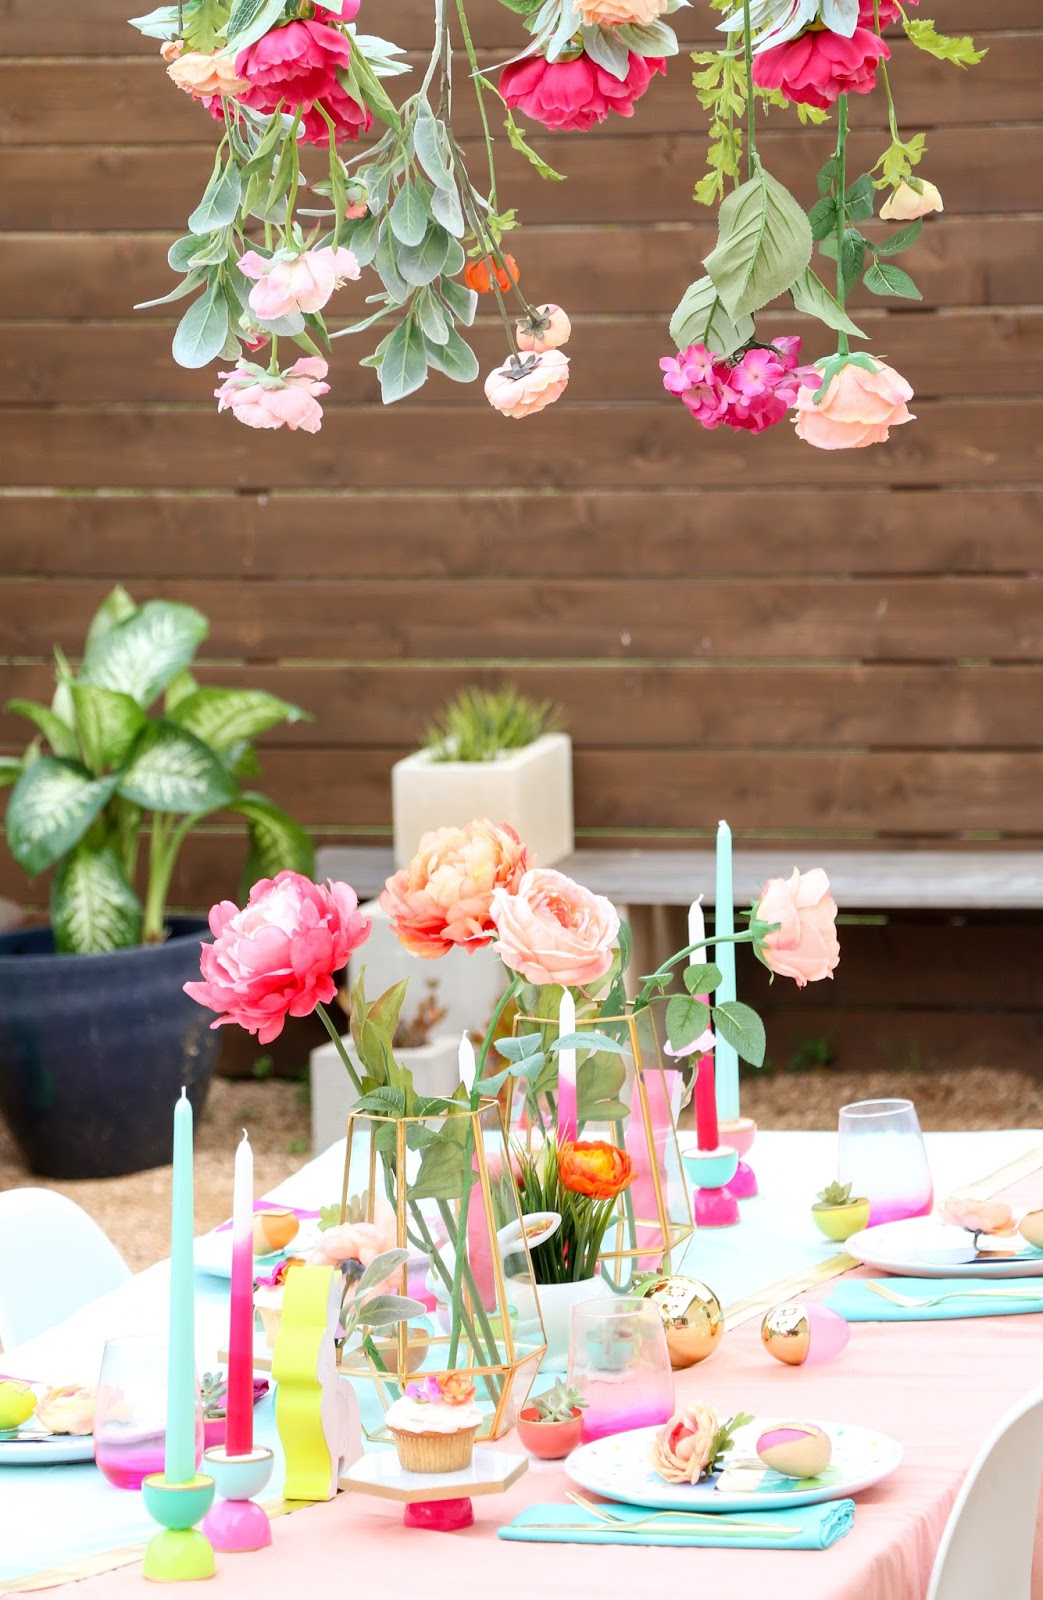 Style It U2013 A Spring Table Setting